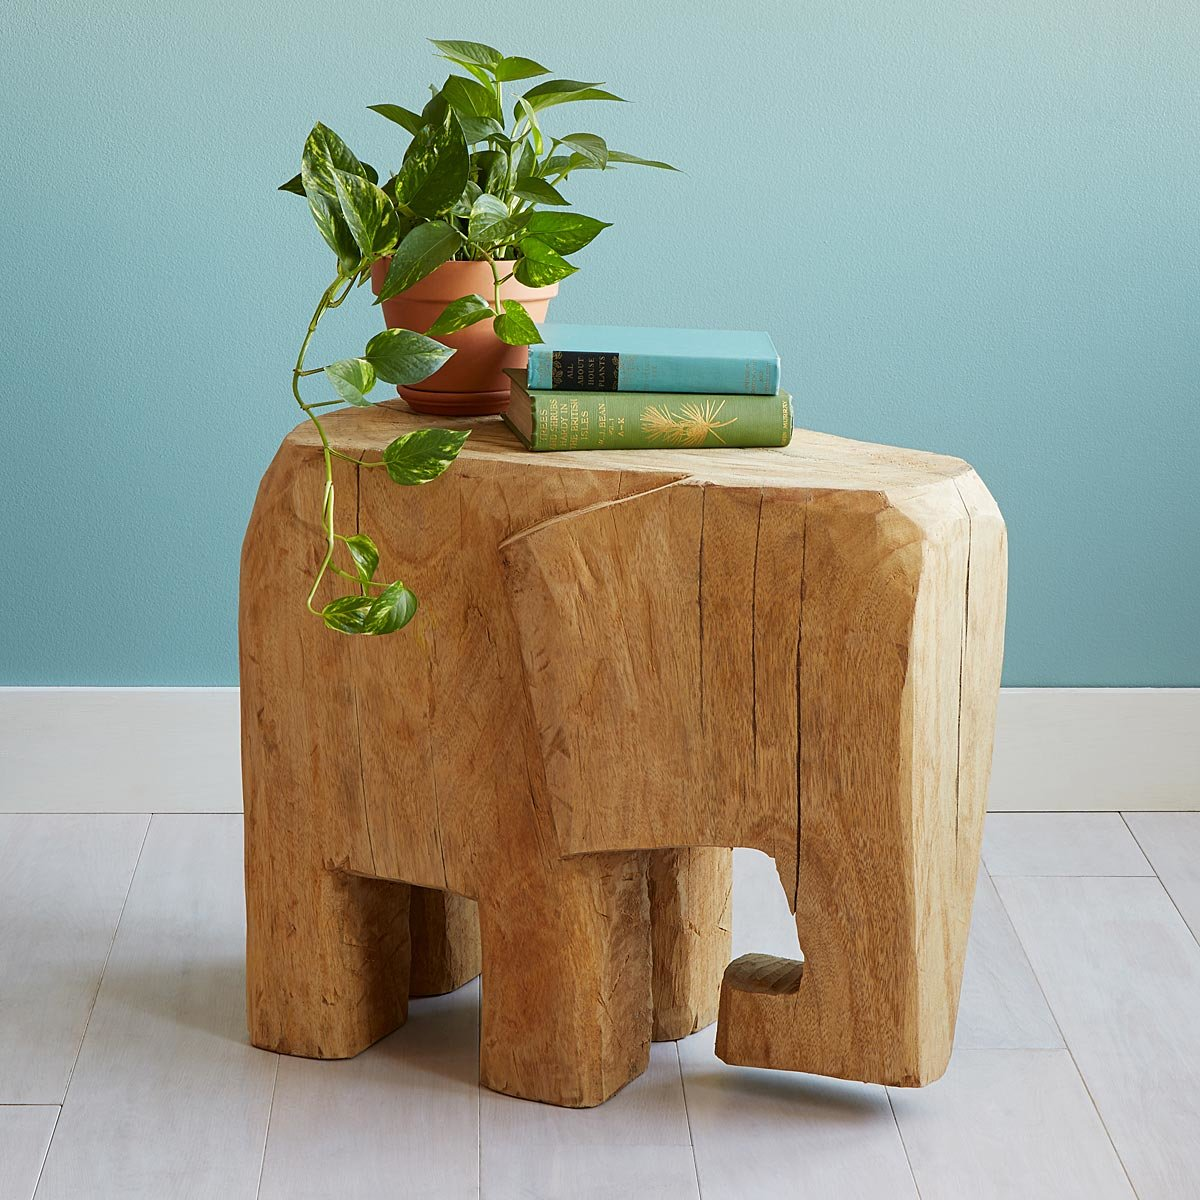 Unique Furniture unique furniture | uncommongoods